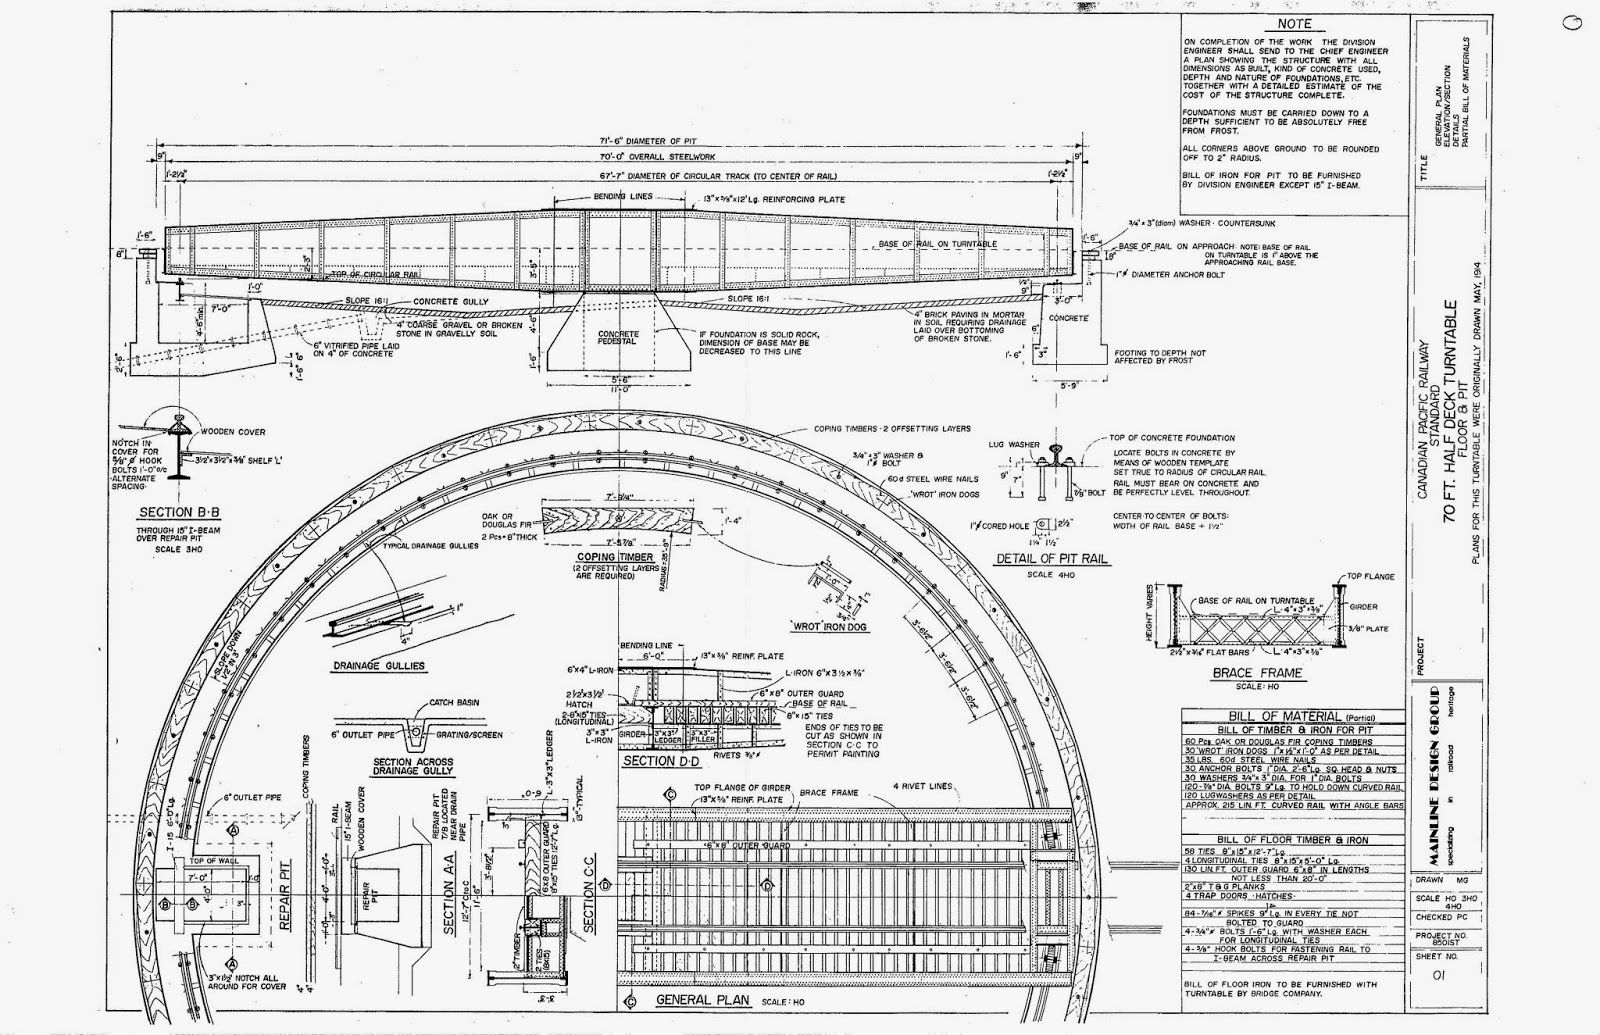 Pin by Daniel Kirshman on Layout | Model trains, Small ... Railroad Roundhouse Plans Blueprints on railroad roundhouses missouri, lionel train track layout plans, railroad stations, railroad tracks, 4x8 ho track plans, railroad yards in chicago, on30 track plans, railroad water tower plans, railroad roundhouses chicago, railroad structure plans, walthers track plans, ho scale turntable plans, railroad shops, railroad roundhouses in ohio, railroad yard design, railroad turntable, railroad engine shed plans, o gauge turntable plans,